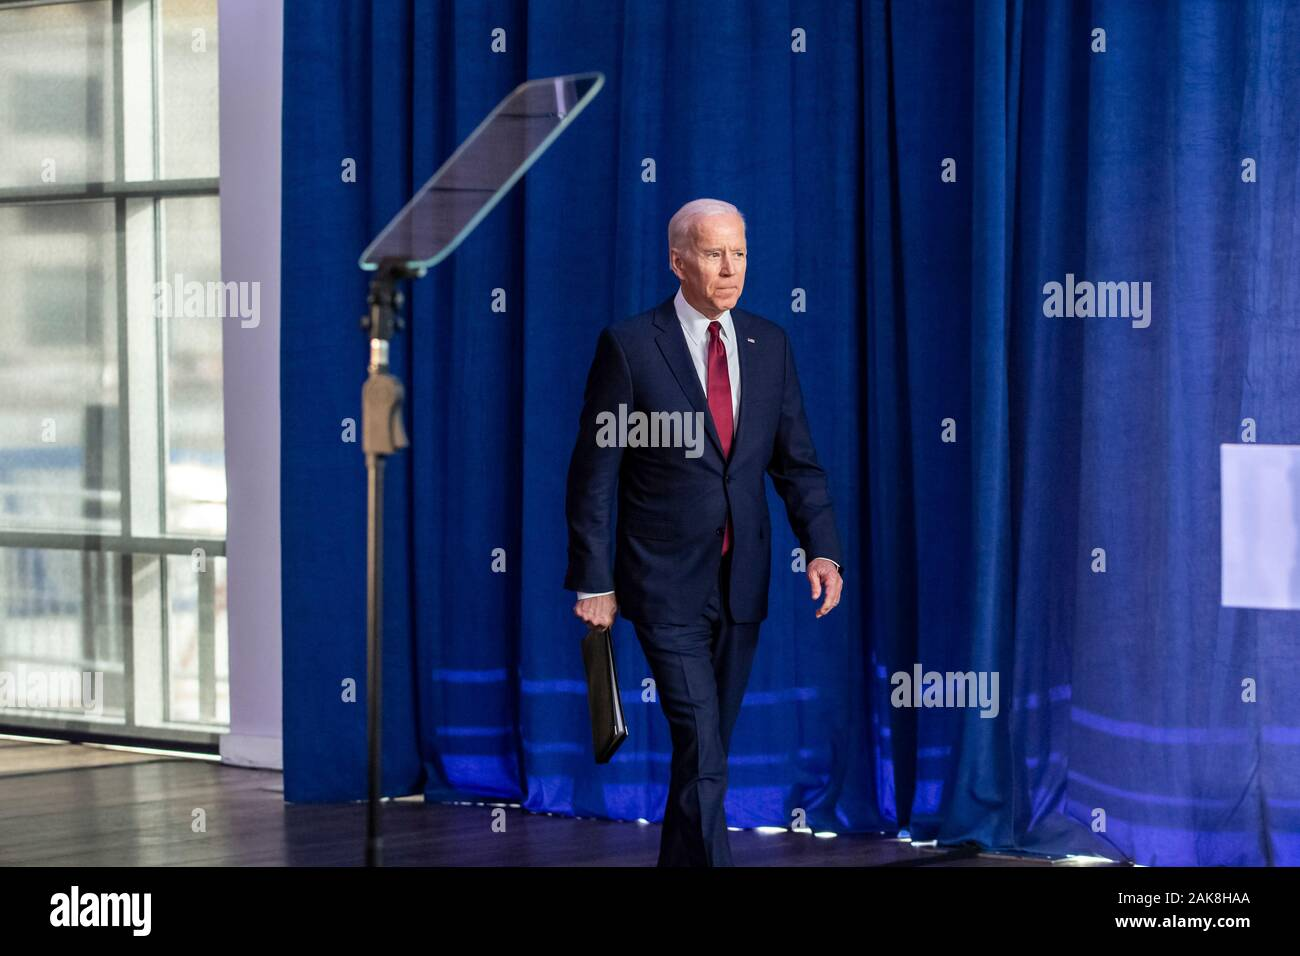 New York City, United States. 07th Jan, 2020. Former Vice President Joe Biden delivers a foreign policy statement at Current at Chelsea Piers, Pier 59 on January 7, 2020 in New York City, New York. Credit: The Photo Access/Alamy Live News Stock Photo